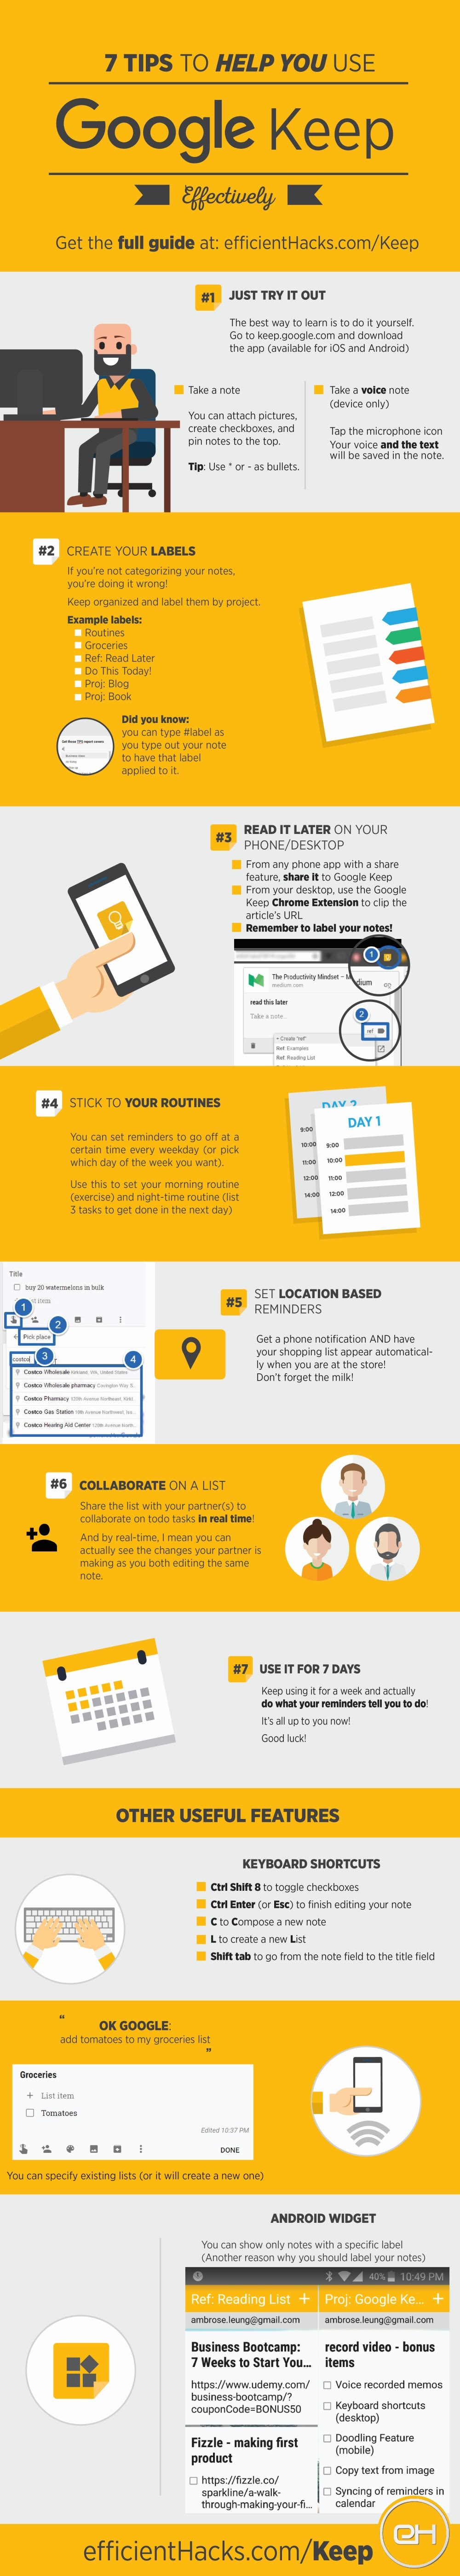 7 Tips To Help You Use Google Keep Effectively - #infographic